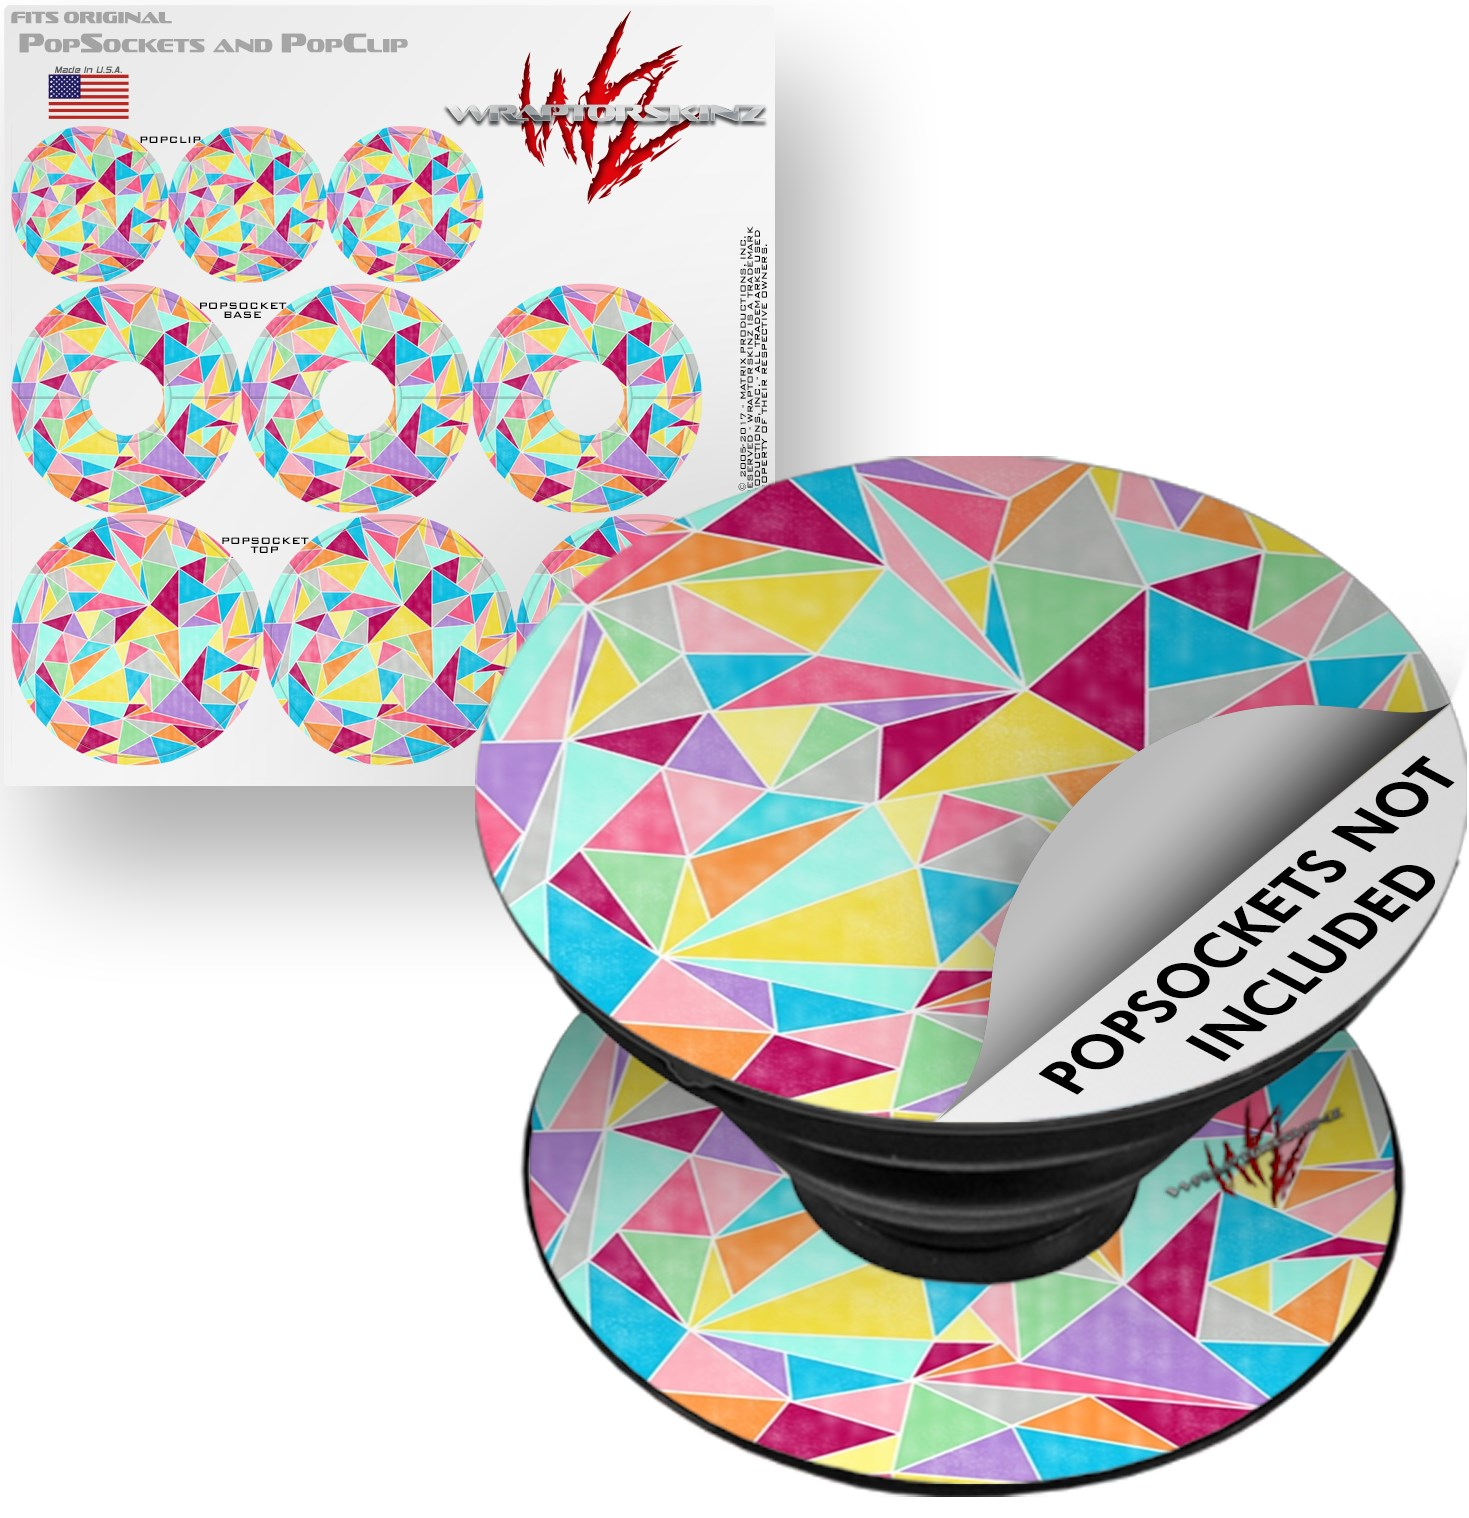 Decal Style Vinyl Skin Wrap 3 Pack for PopSockets Brushed Geometric (POPSOCKET NOT INCLUDED) by WraptorSkinz